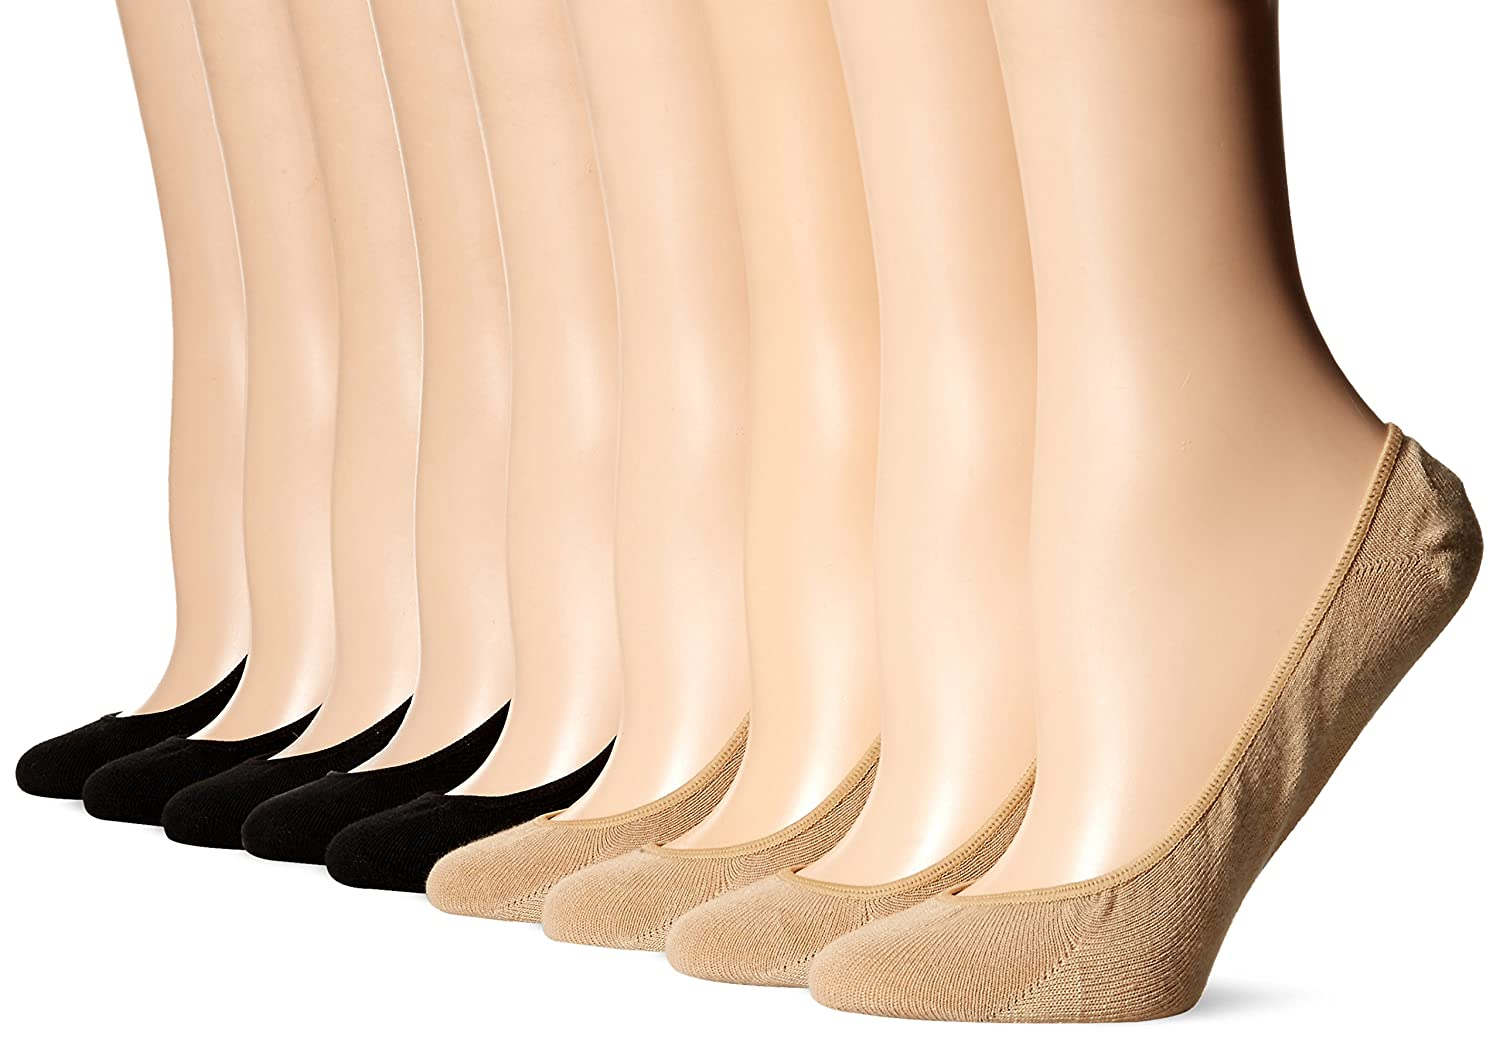 HUE Women's Classic Low Cut Liner Socks with Silicone Tab-8 Pair Pack Black/Nude One Size U20049